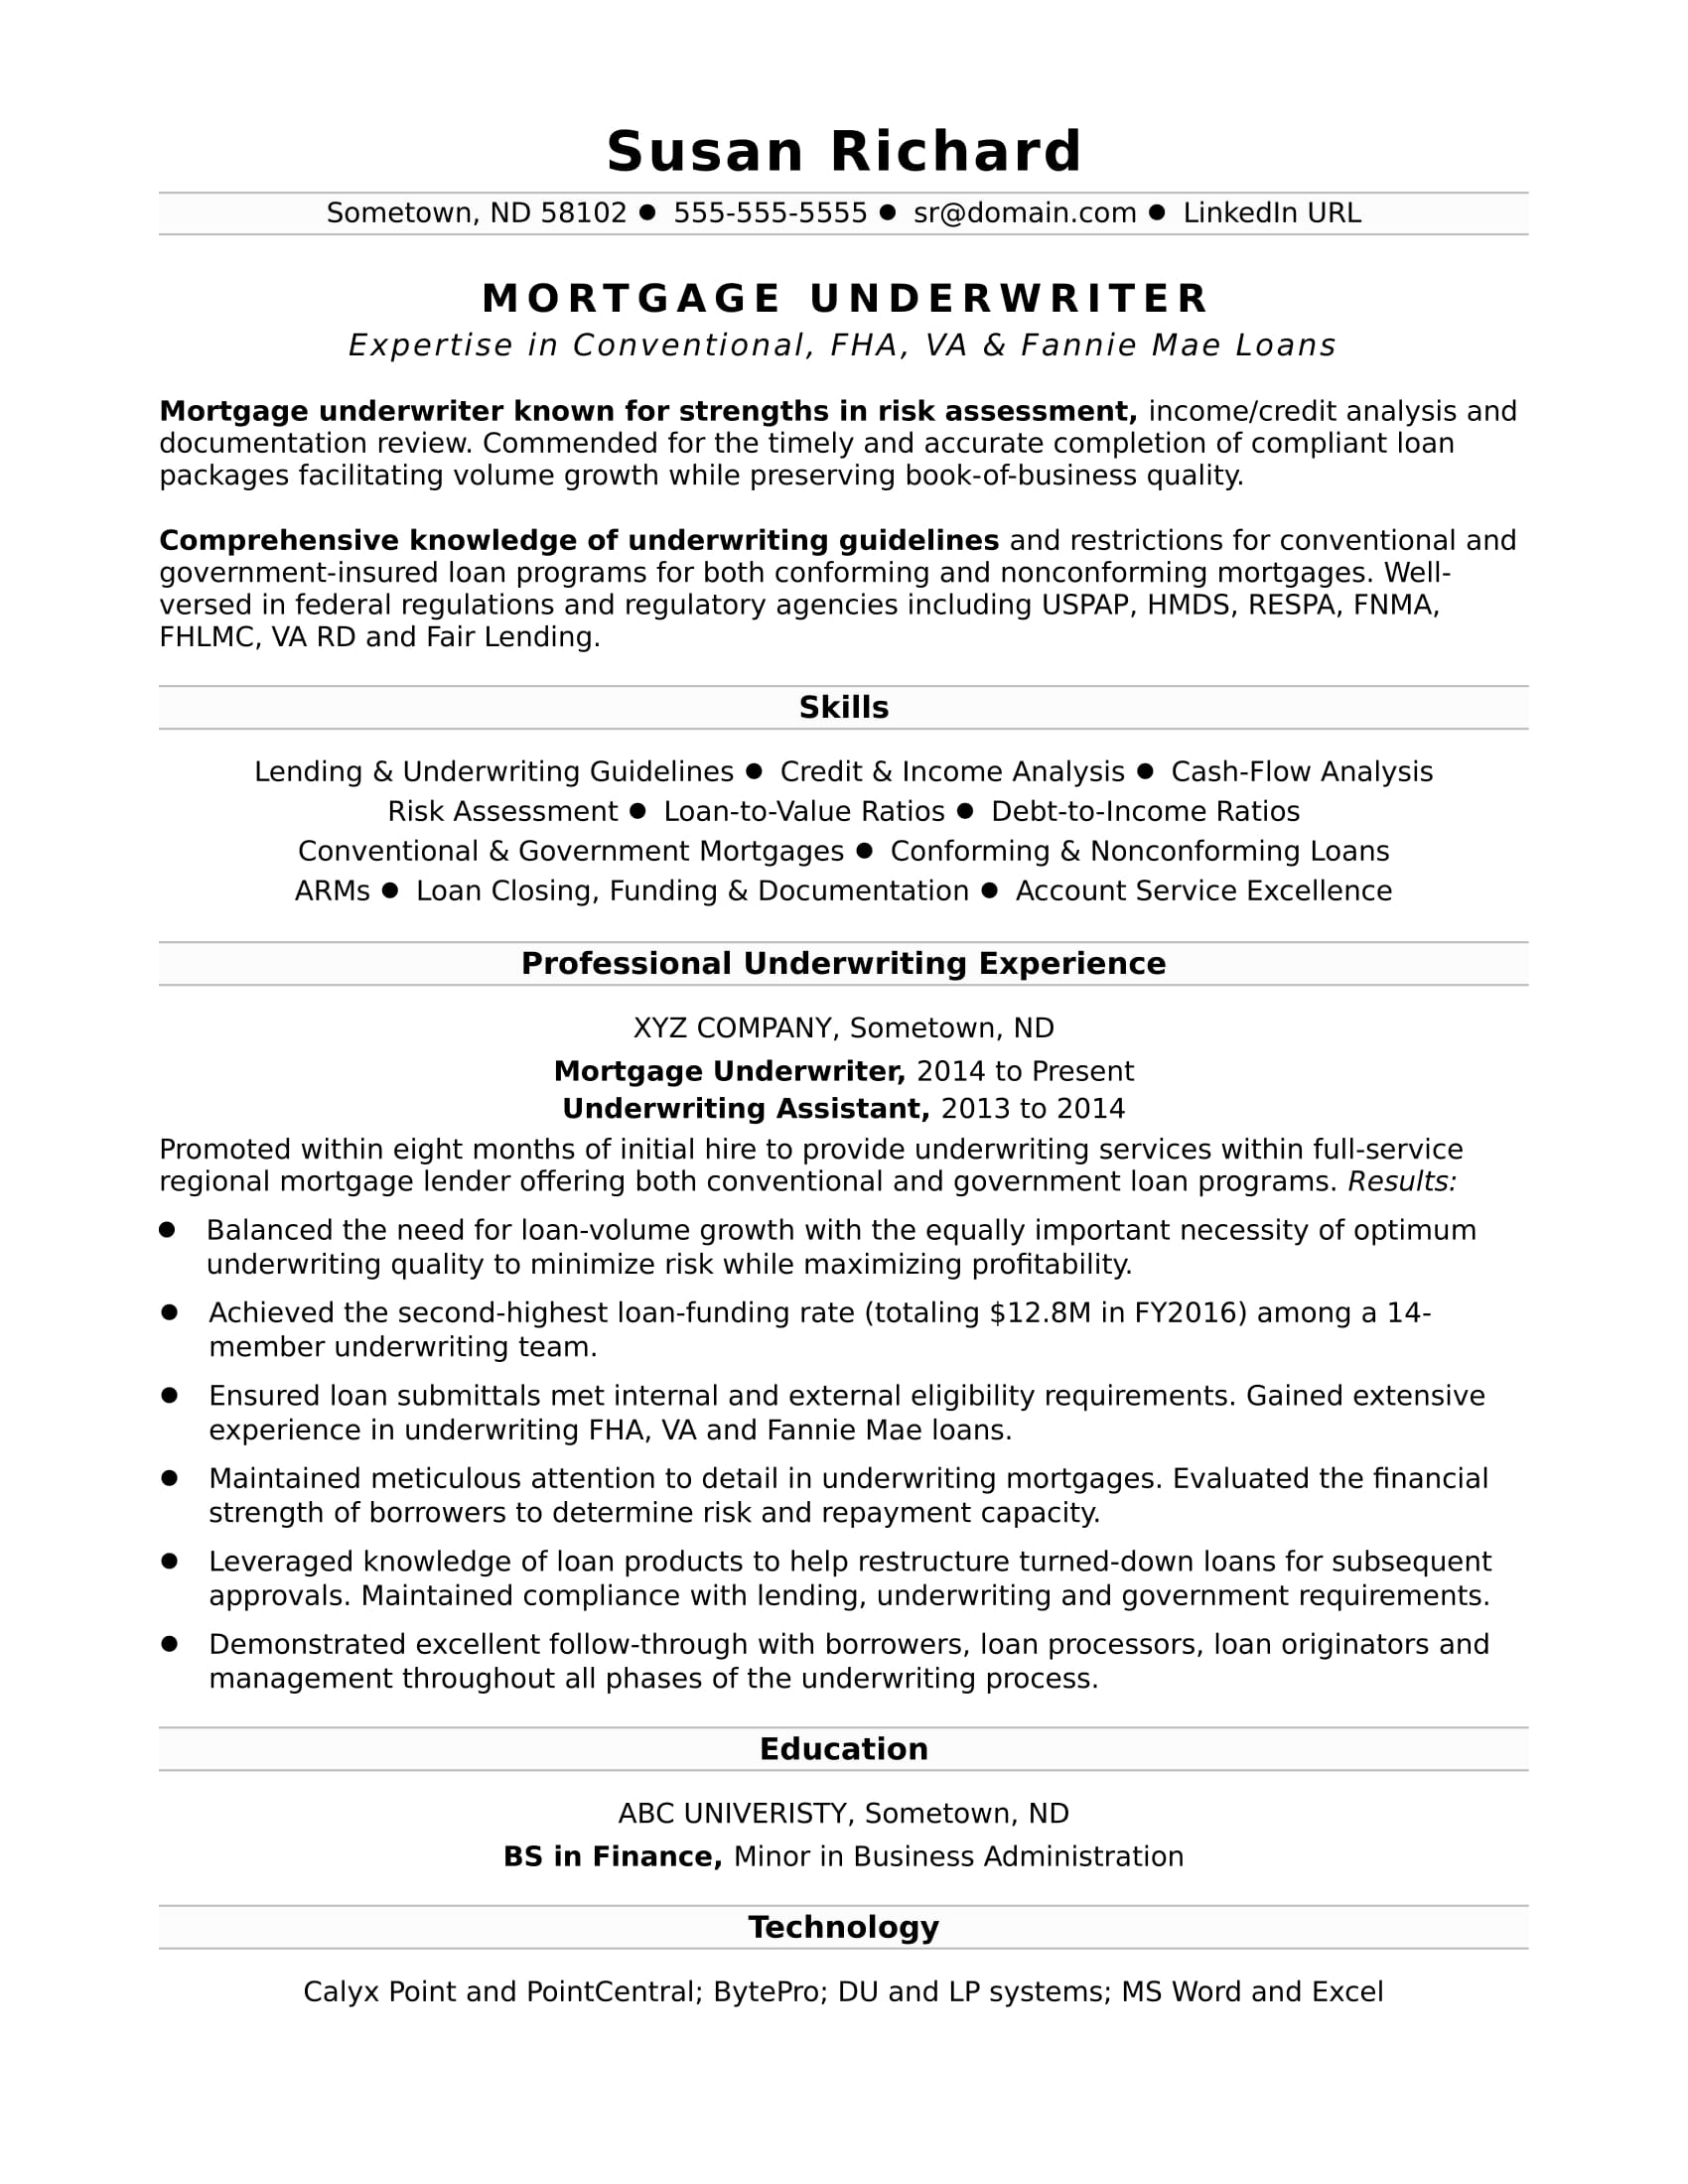 sample resume for a mortgage underwriter - Government Resume Samples